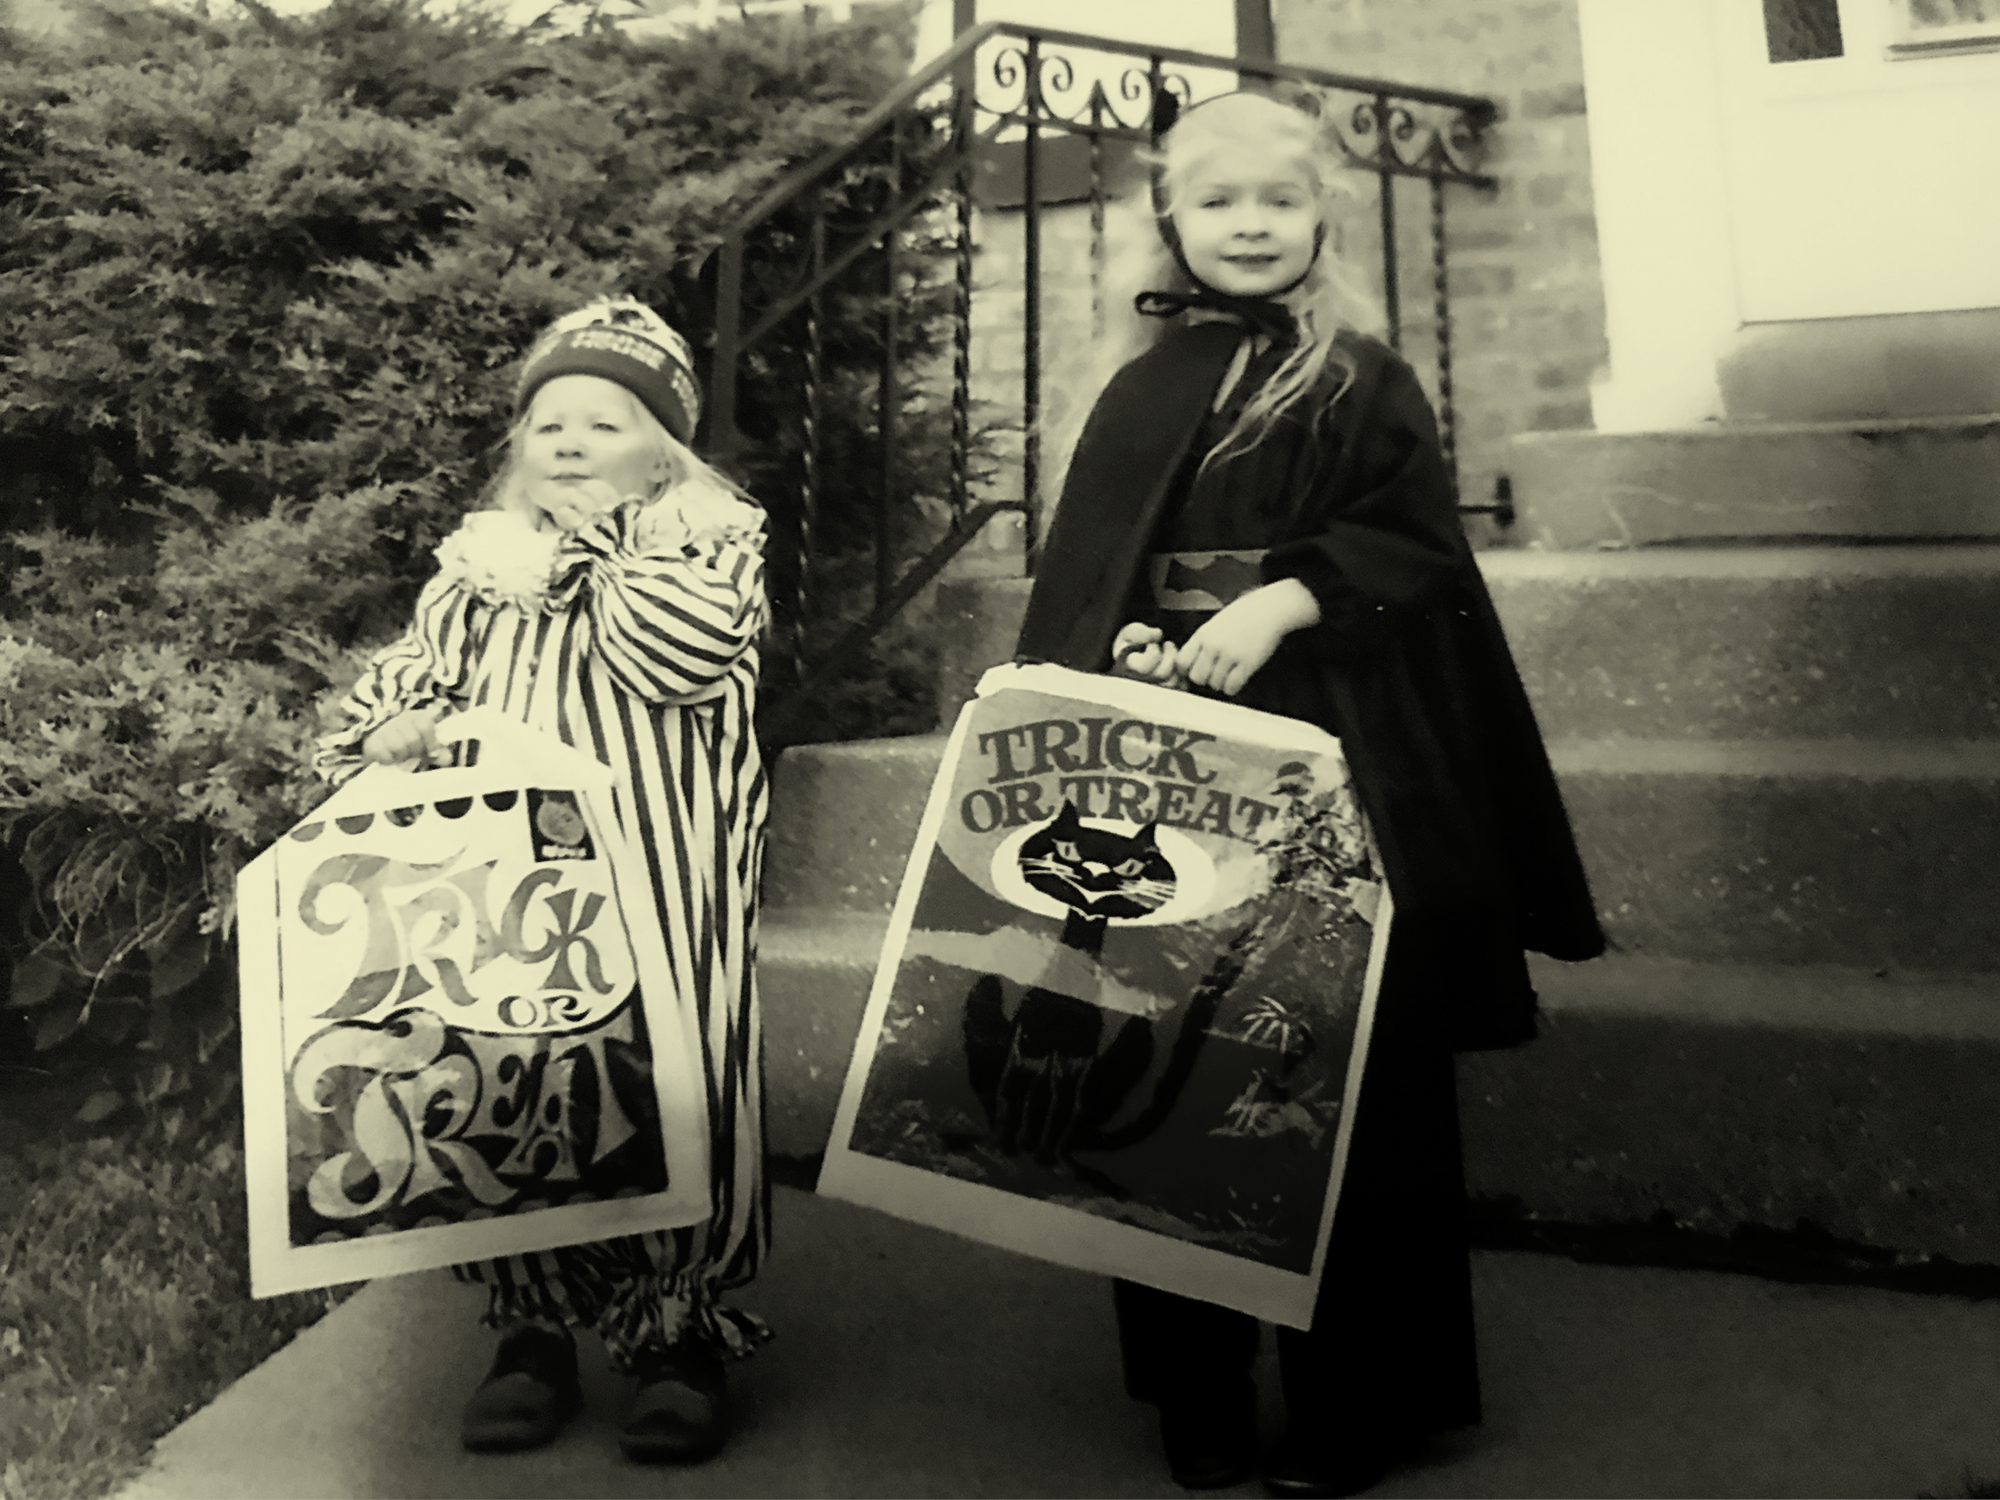 Two blonde and fair skinned children stand outside at the foot of a small cement staircase in homemade halloween costumes (a clown on the left, batgirl on the right), holding square plastic bags printed with halloween/trick-or-treat designs. The taller blonde child on the right (bat girl) is the author. The image has a yellow tint.